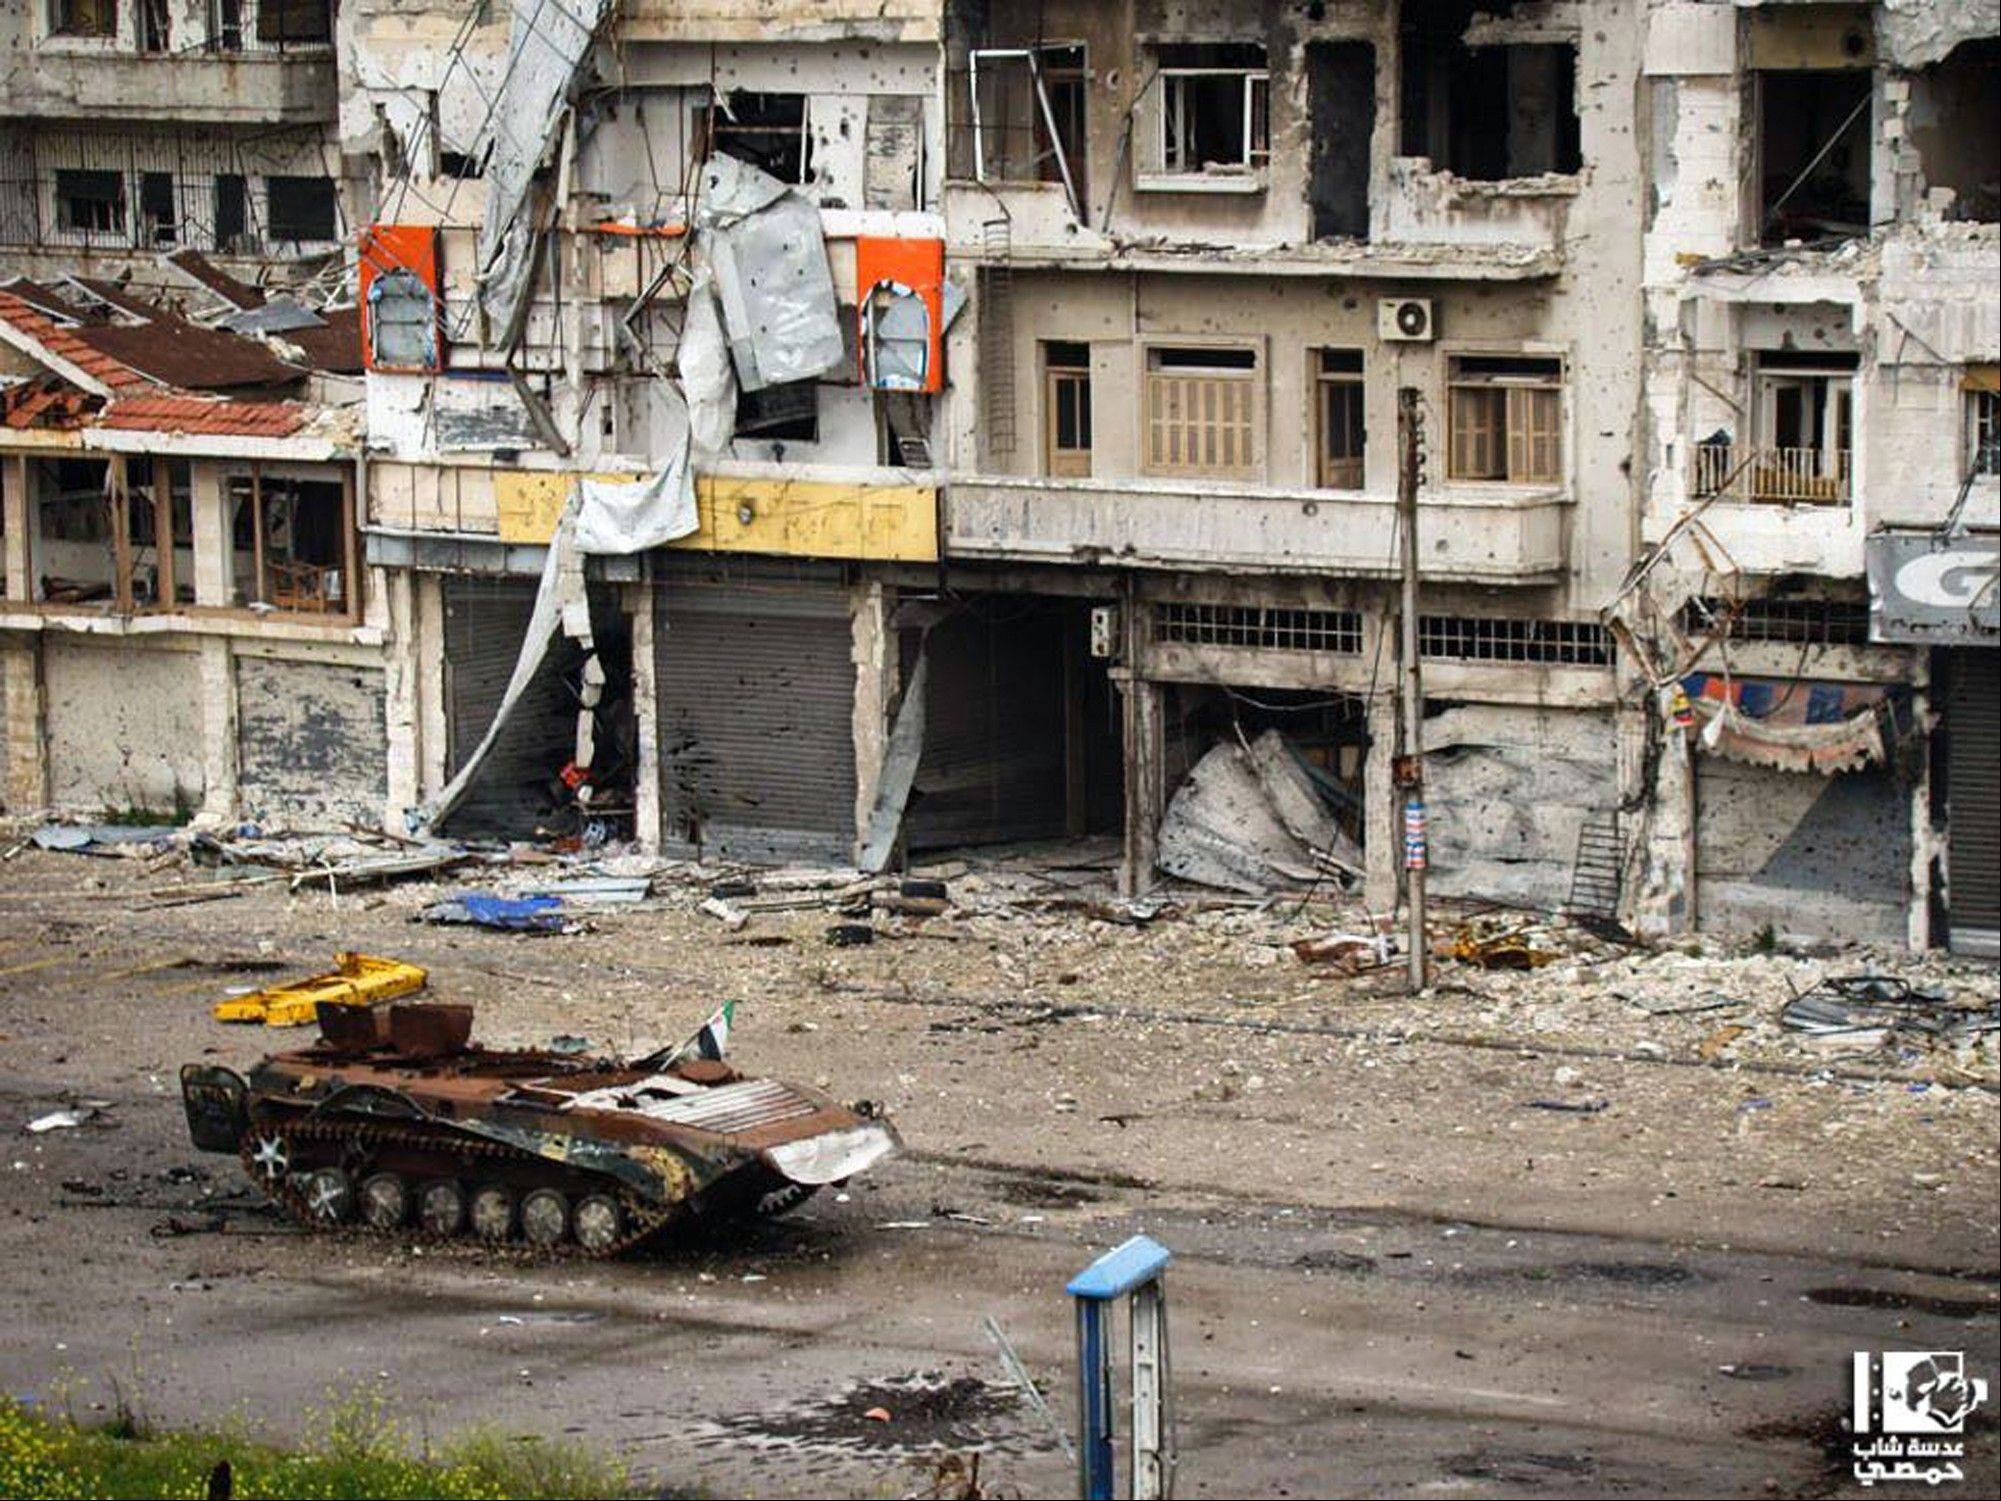 A destroyed Syrian tank is seen at al-Qossur neighborhood in Homs province, Syria, Monday. Syrian troops have taken full control of a town near the highway linking the capital Damascus with Jordan, a new advance in the regime's campaign to drive rebels from the strategic south, an activist group said Monday.